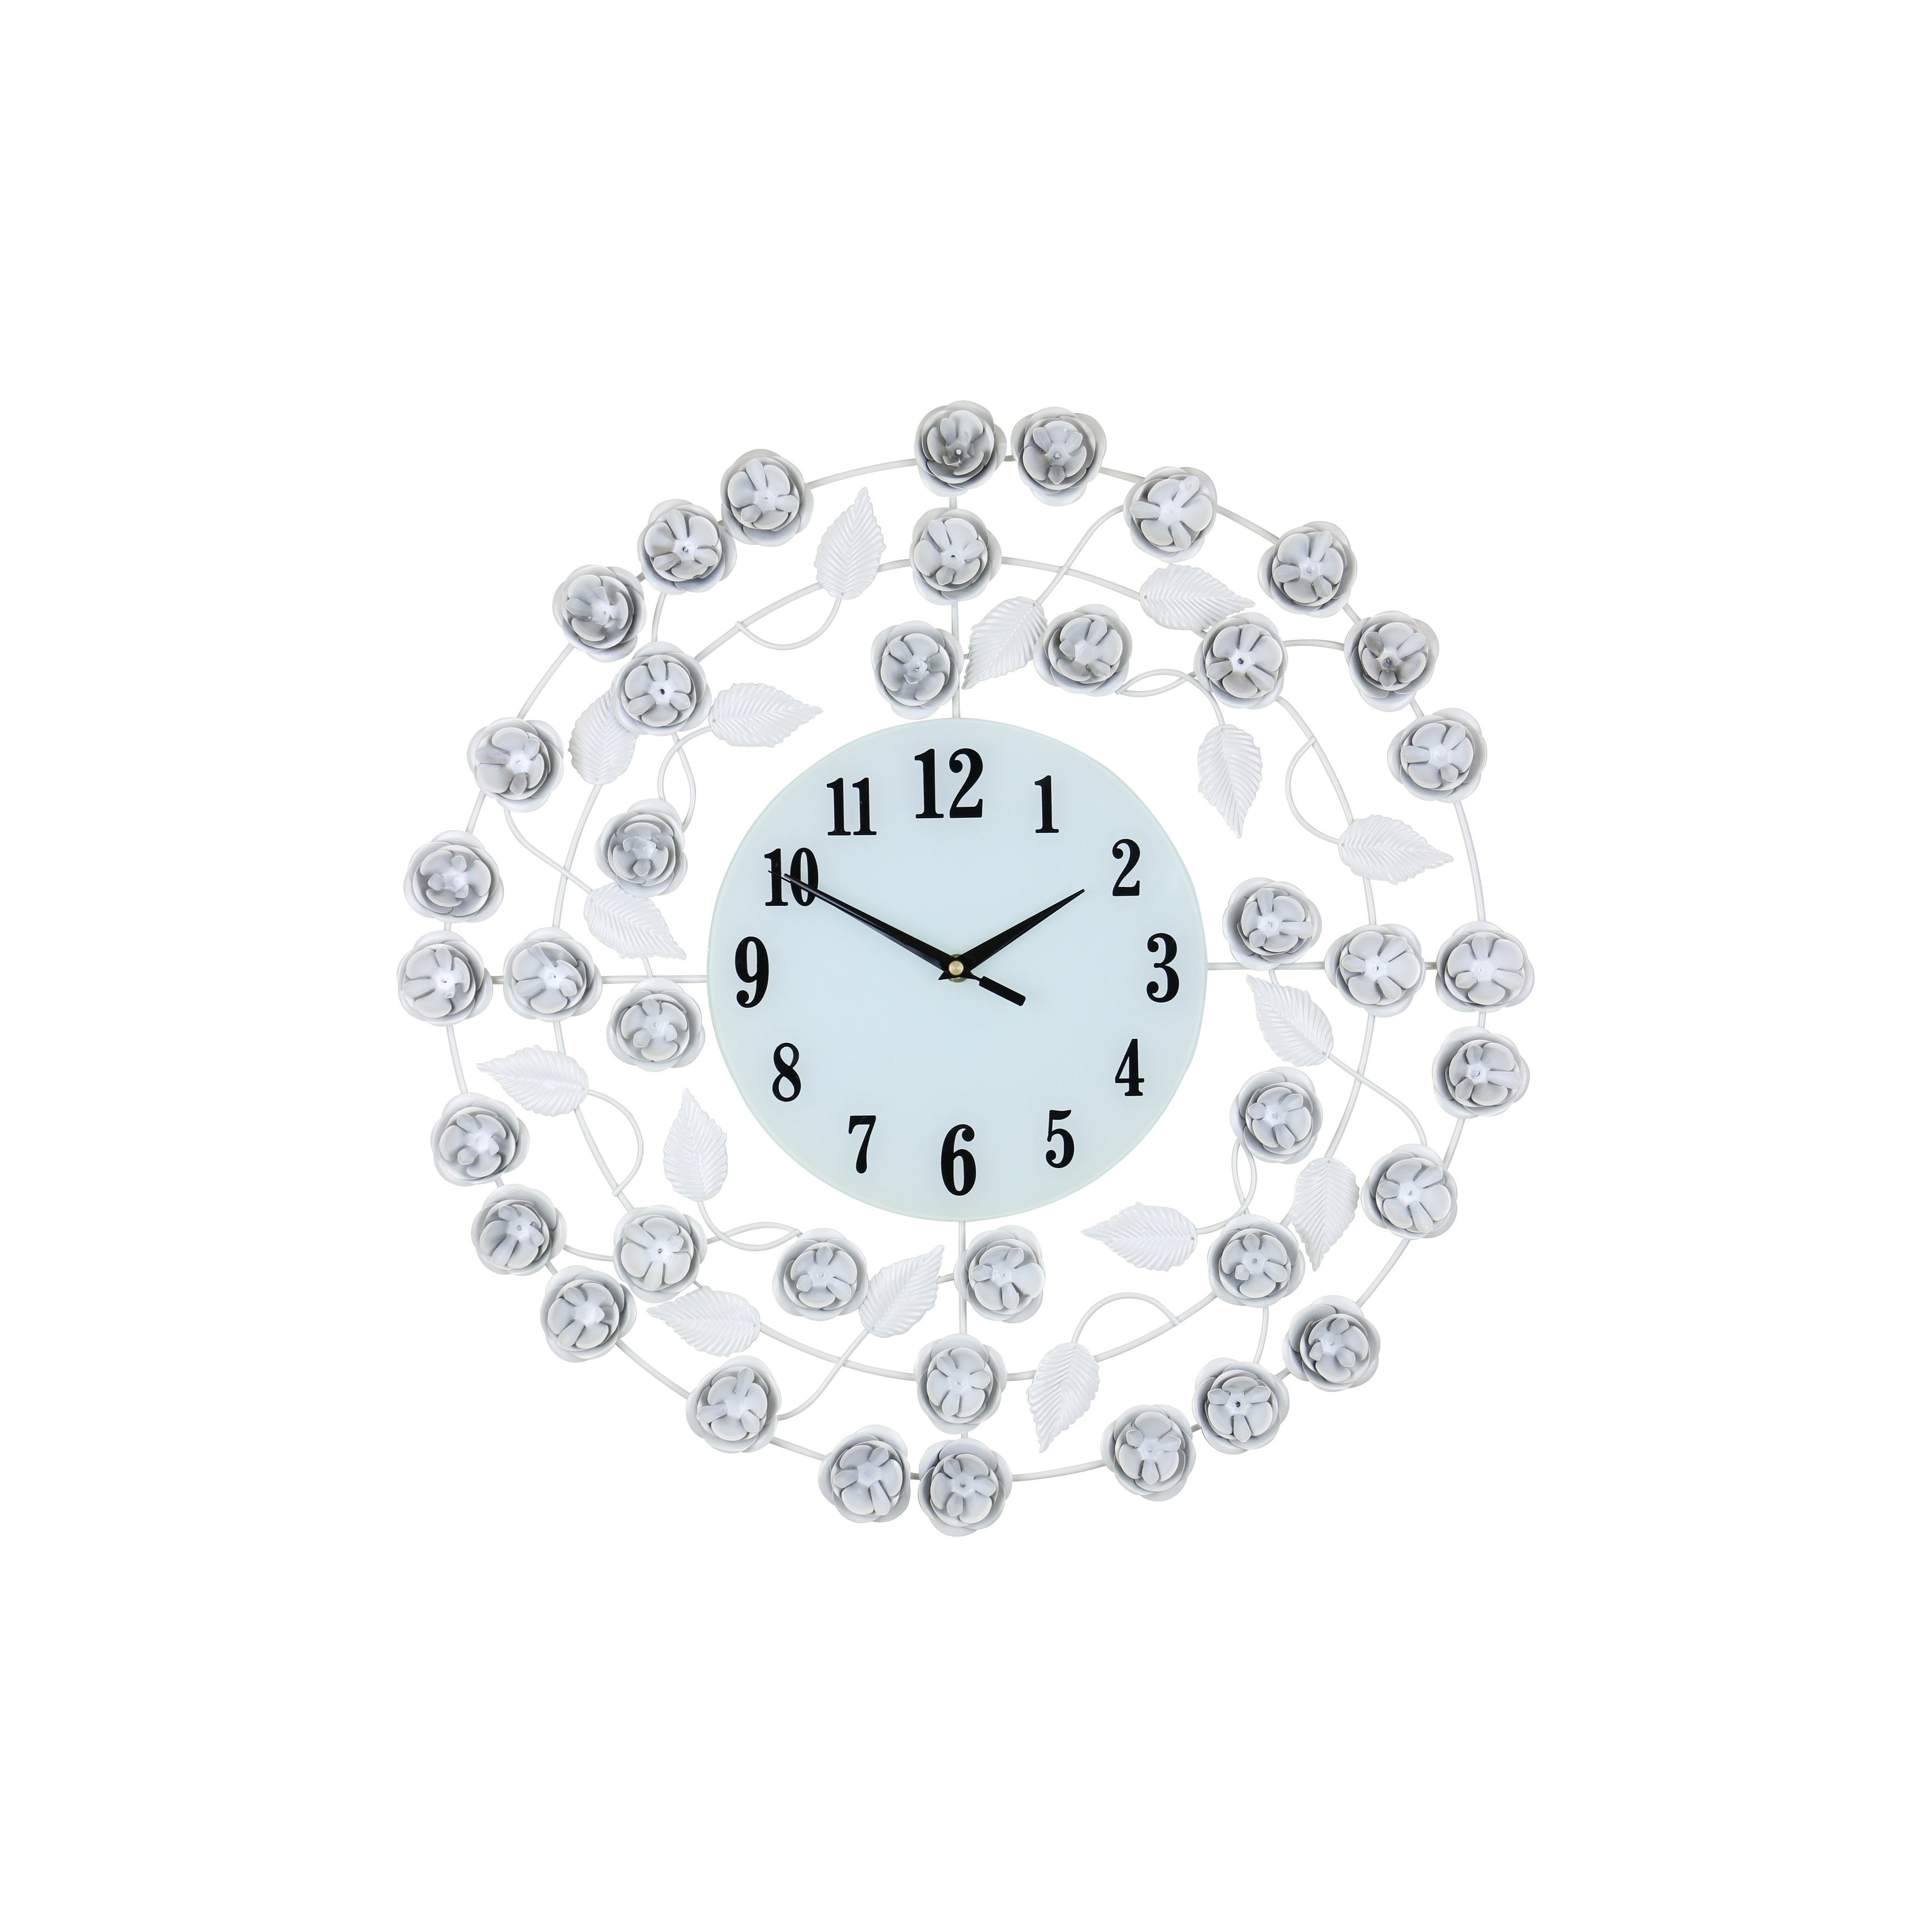 Elegant Circular Wall Clock With White Flowers And Leaves 21 Shabby Chic Home Or Office Décor Free Shipping Today 20654913